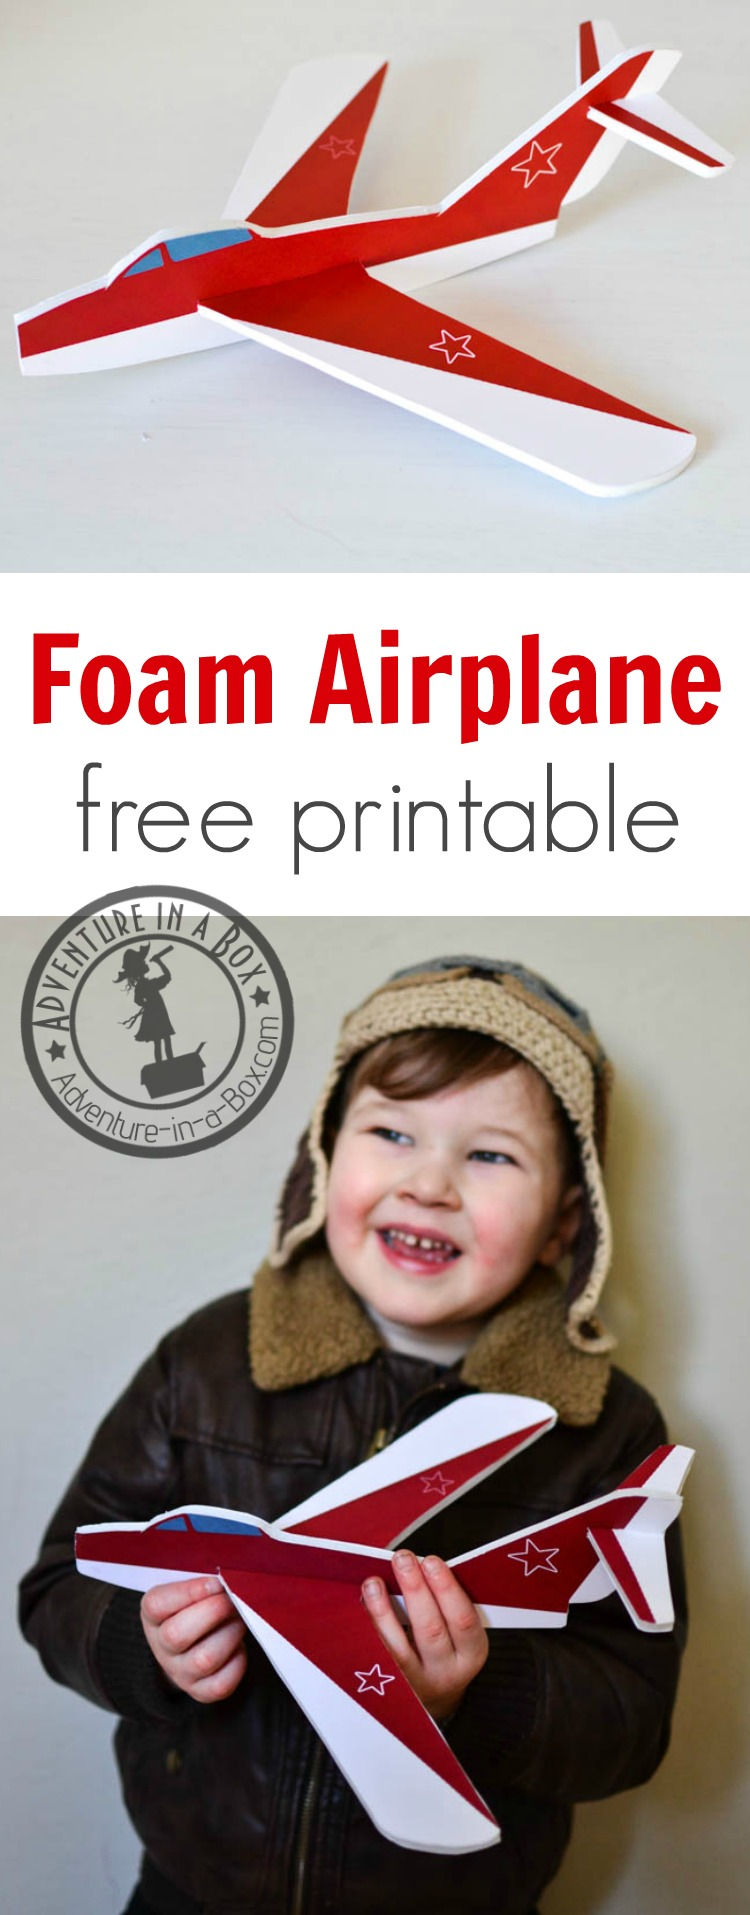 Make a handmade version of a foam glider airplane at home. With a free printable pattern, it's a quick and easy STEM craft to work on together with kids!